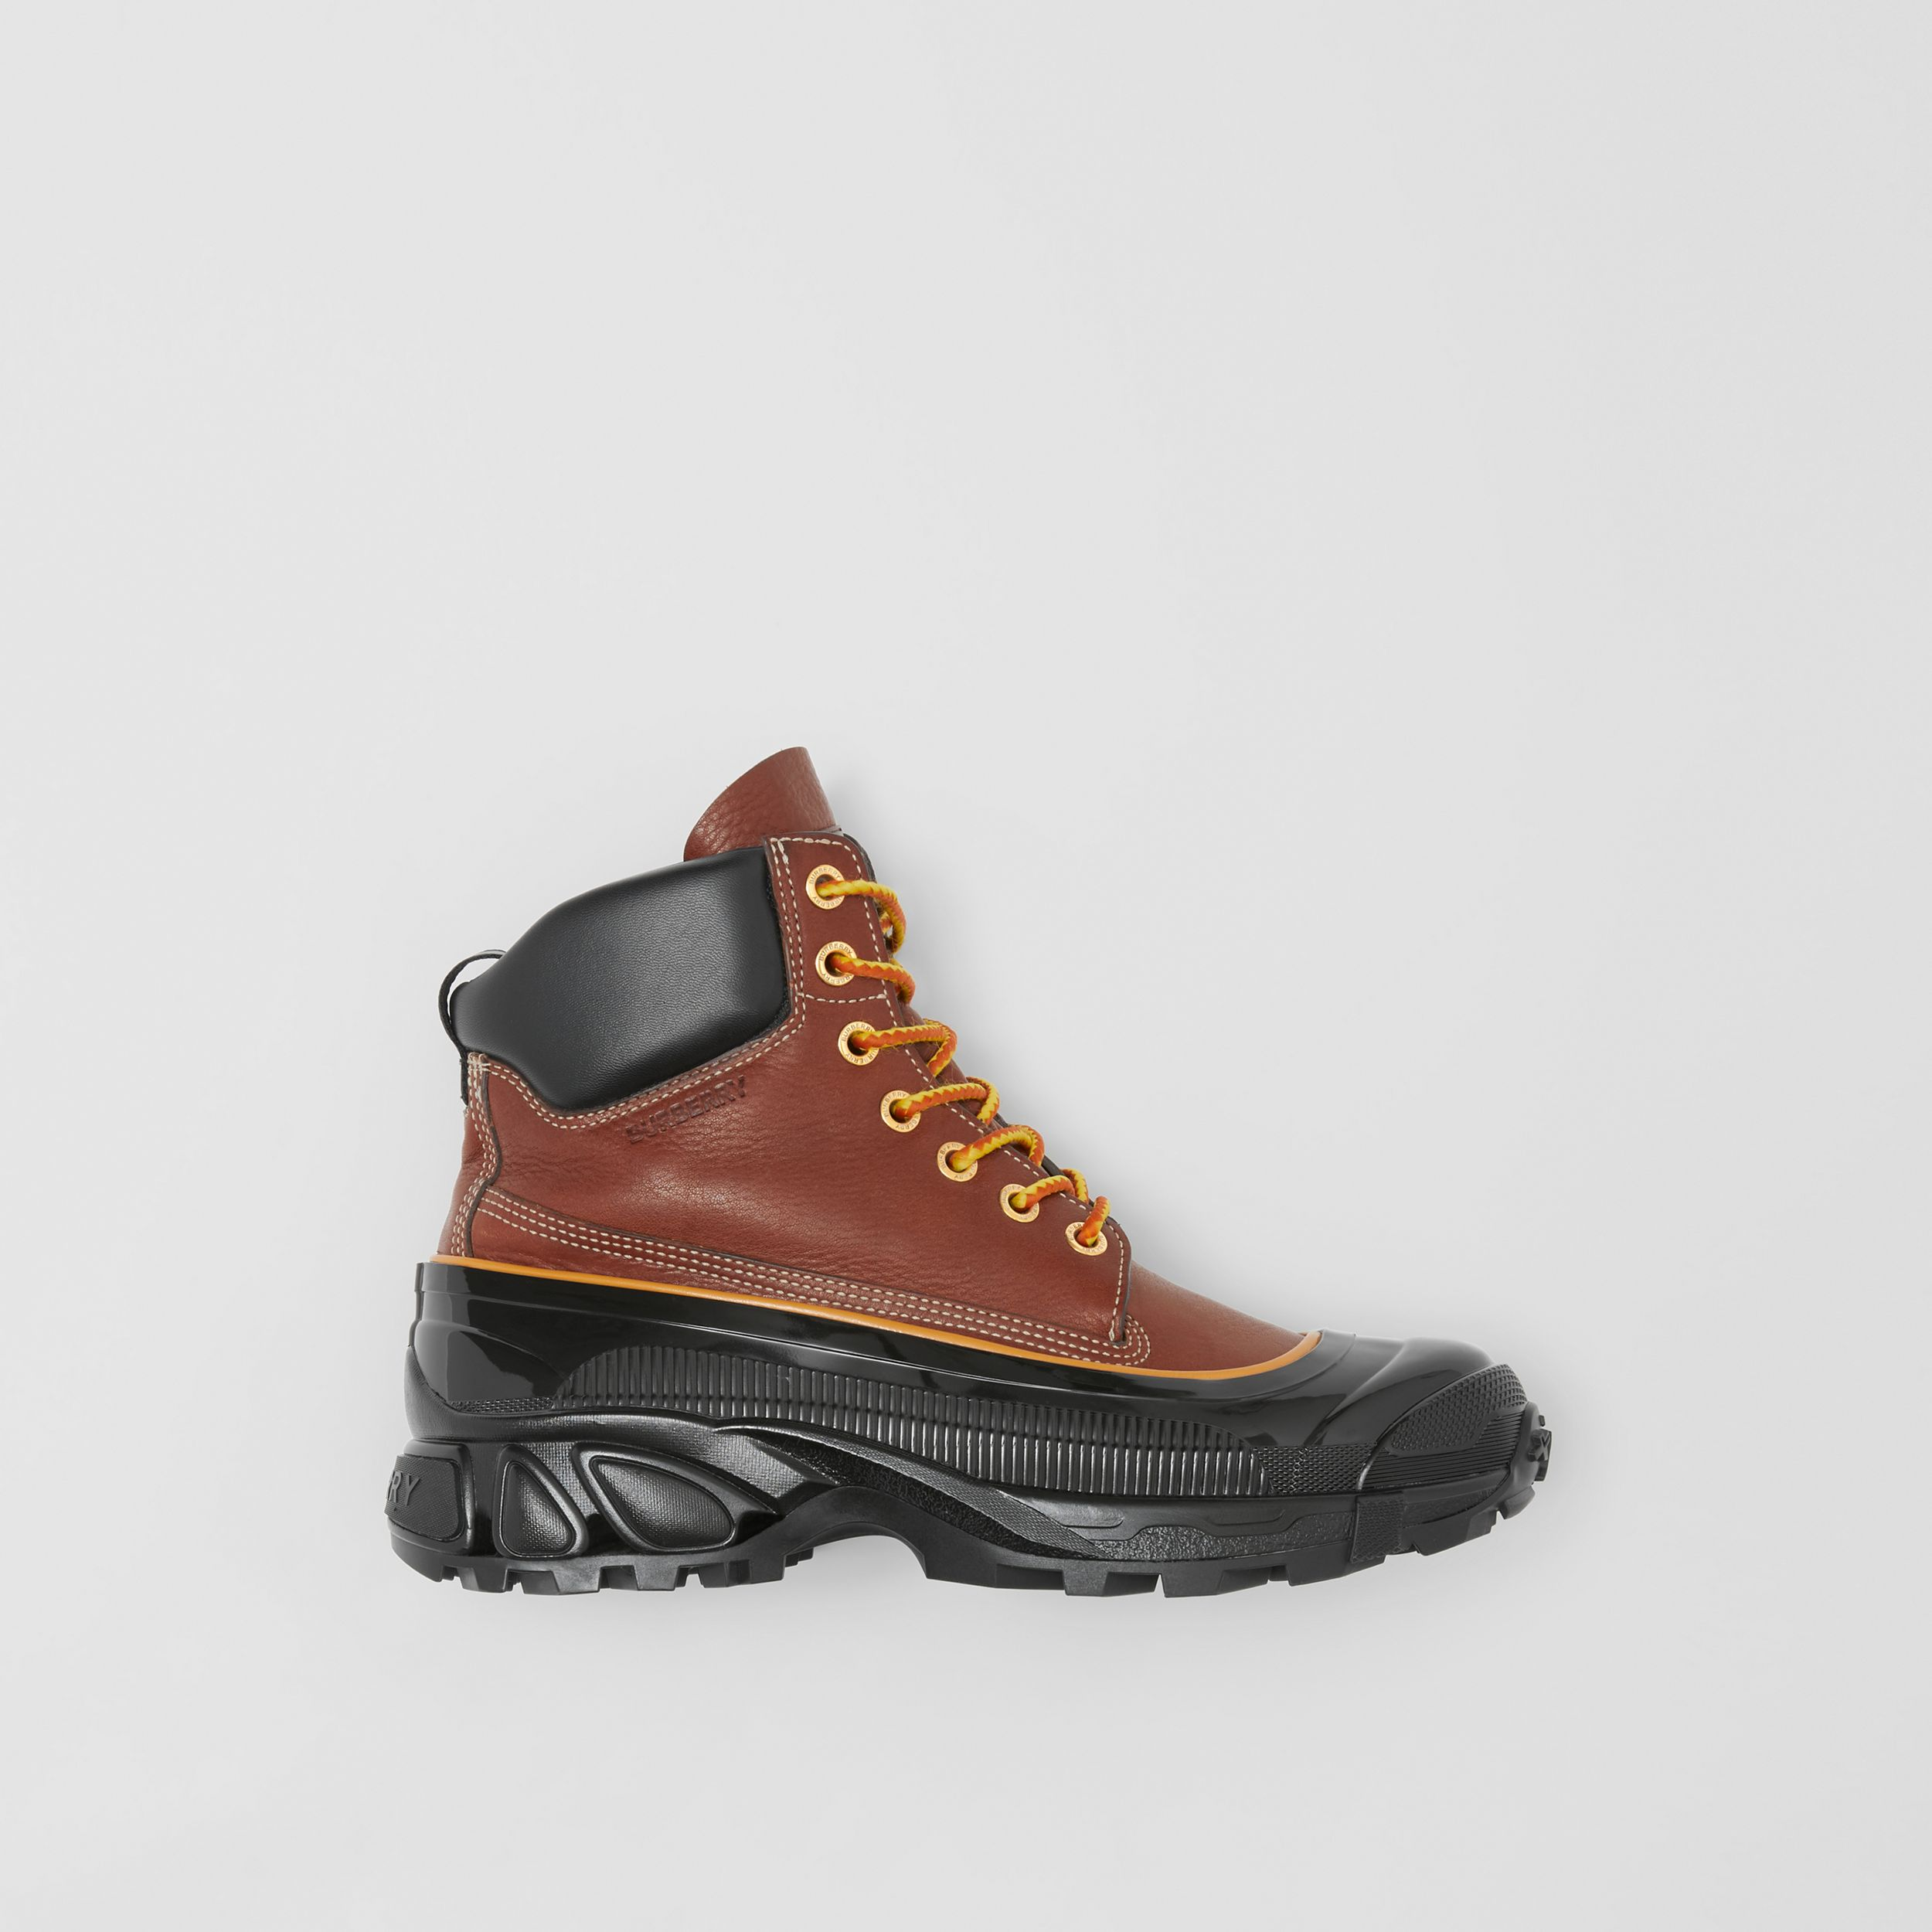 Contrast Sole Leather Boots in Tan - Men | Burberry - 1